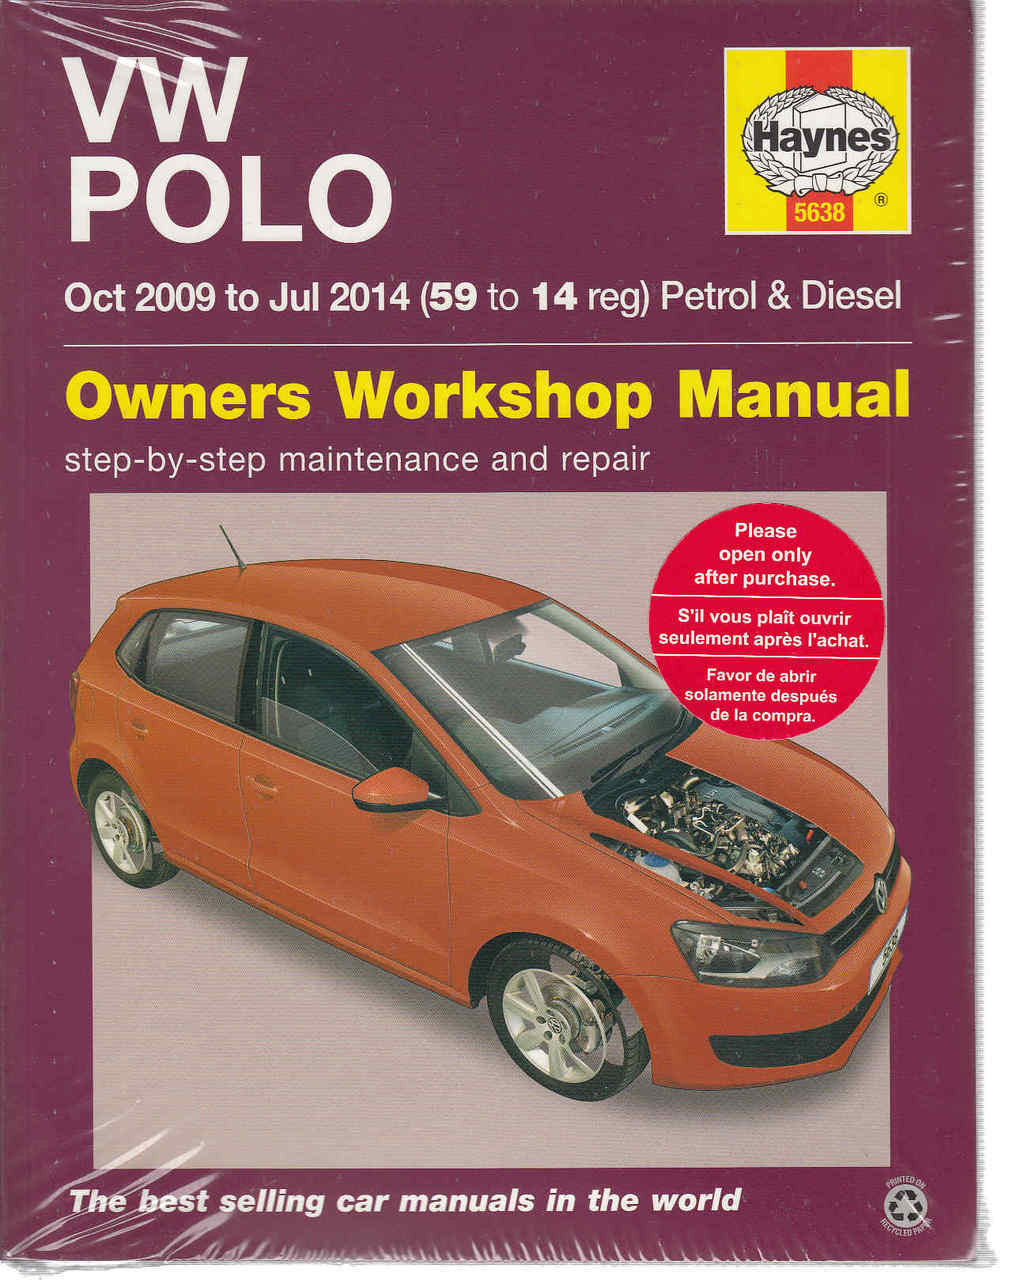 vw polo maintenance manual  vw-polo-maintenance-manual.nflodds.us